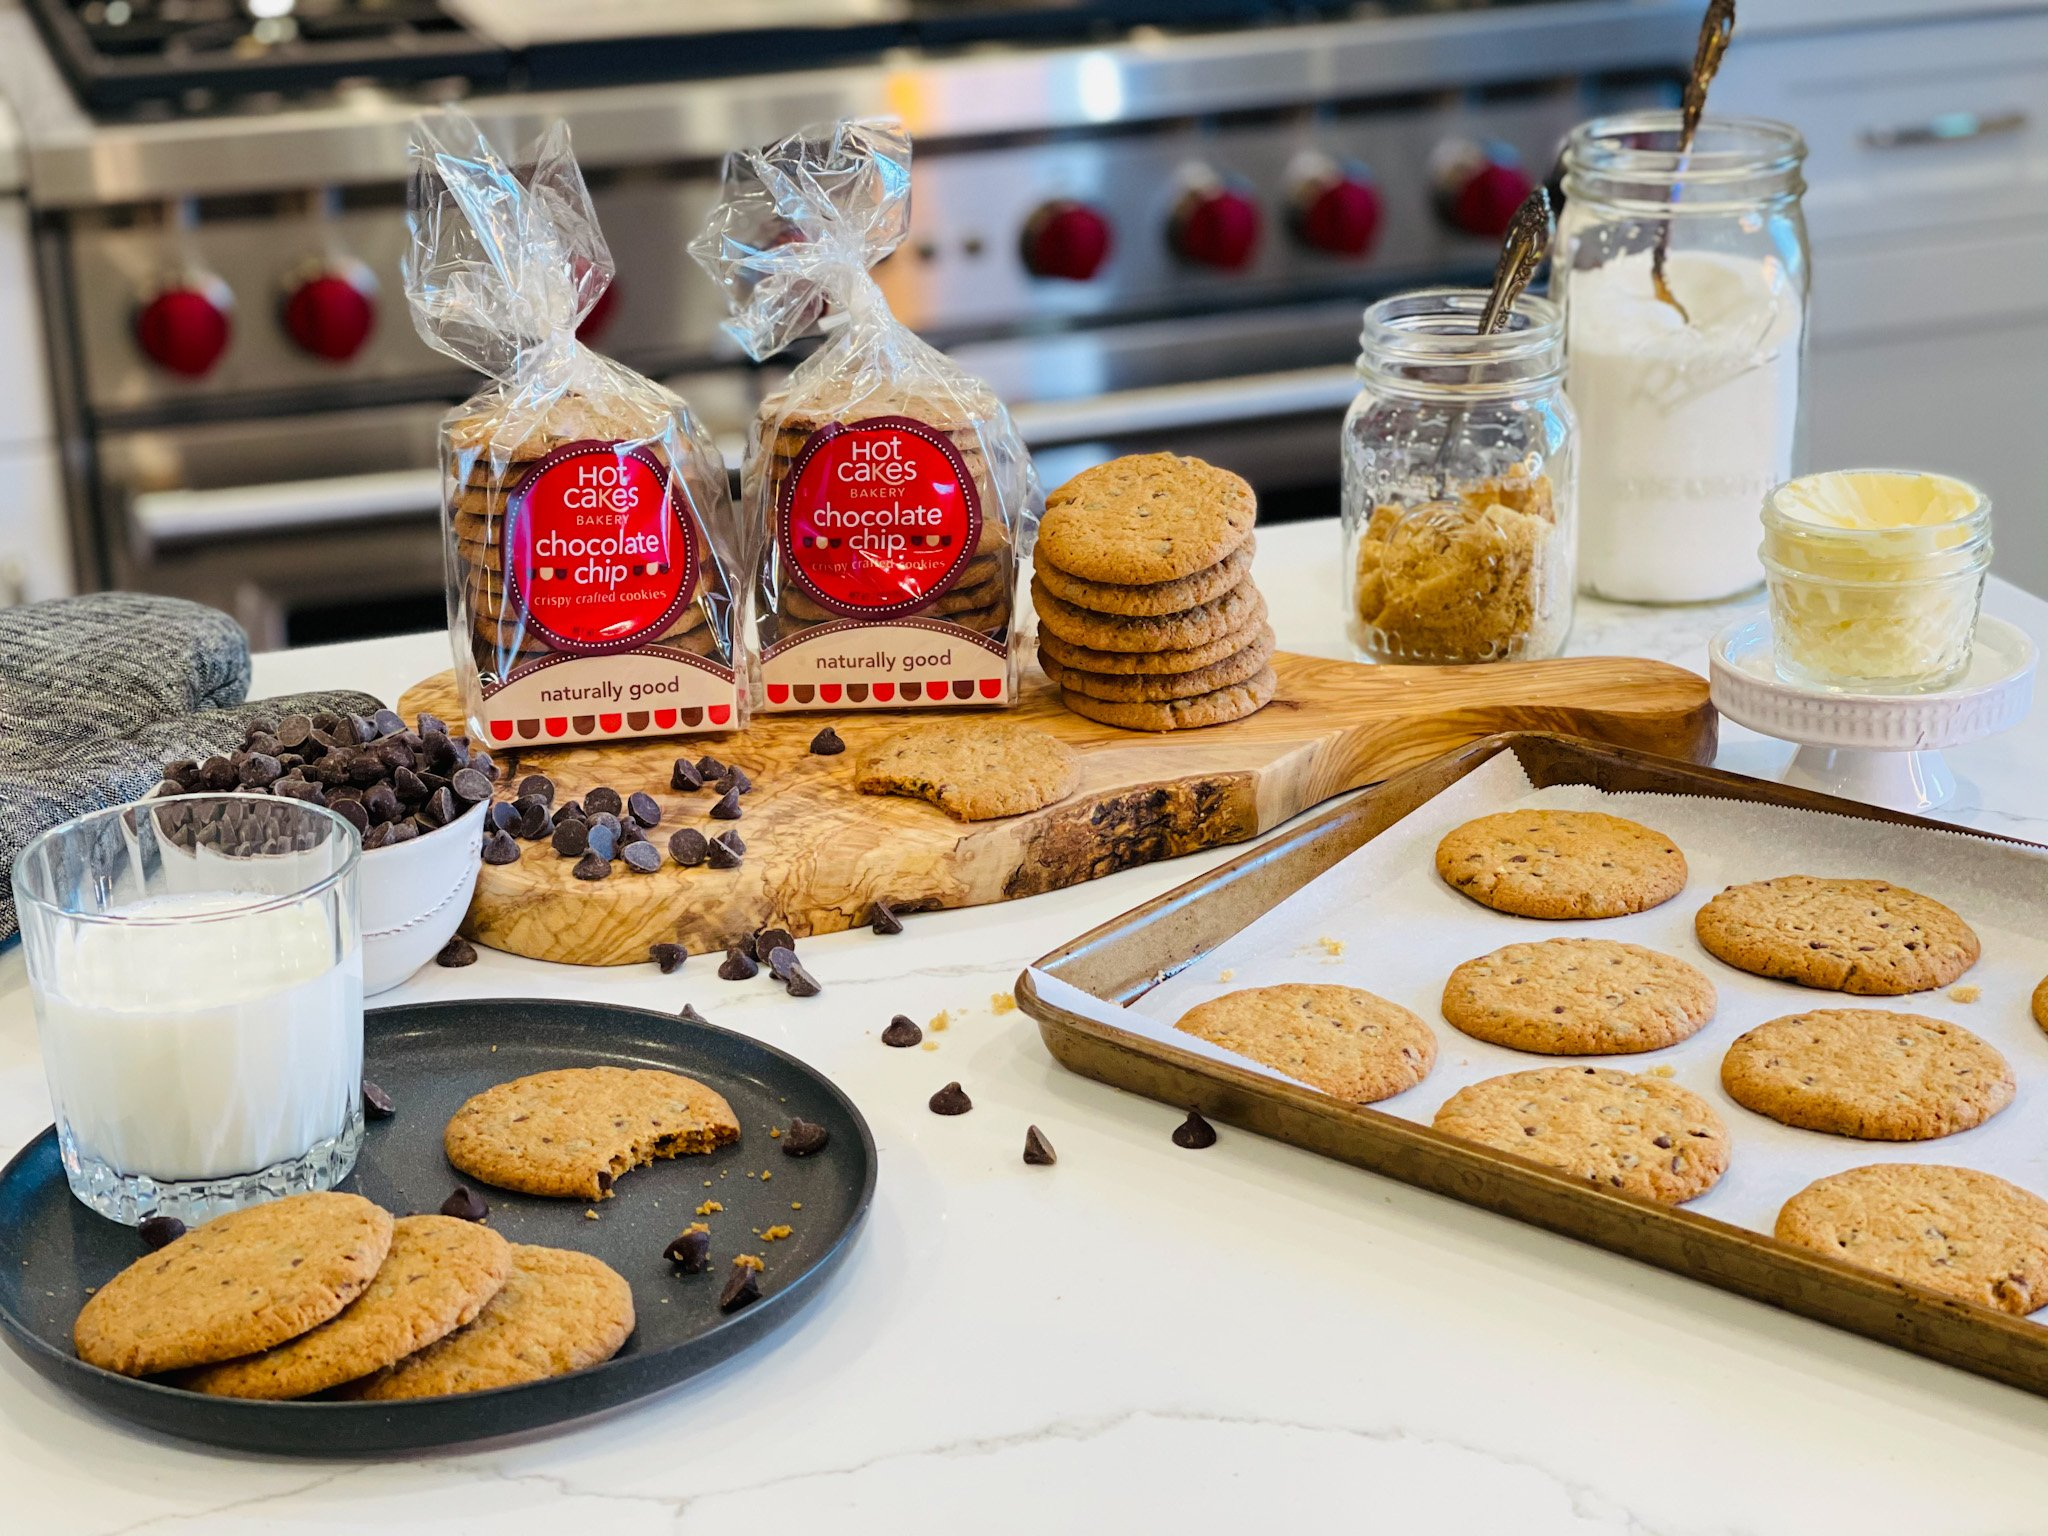 Hot Cakes Bakery - Crispy Crafted Chocolate Chip Cookies 2